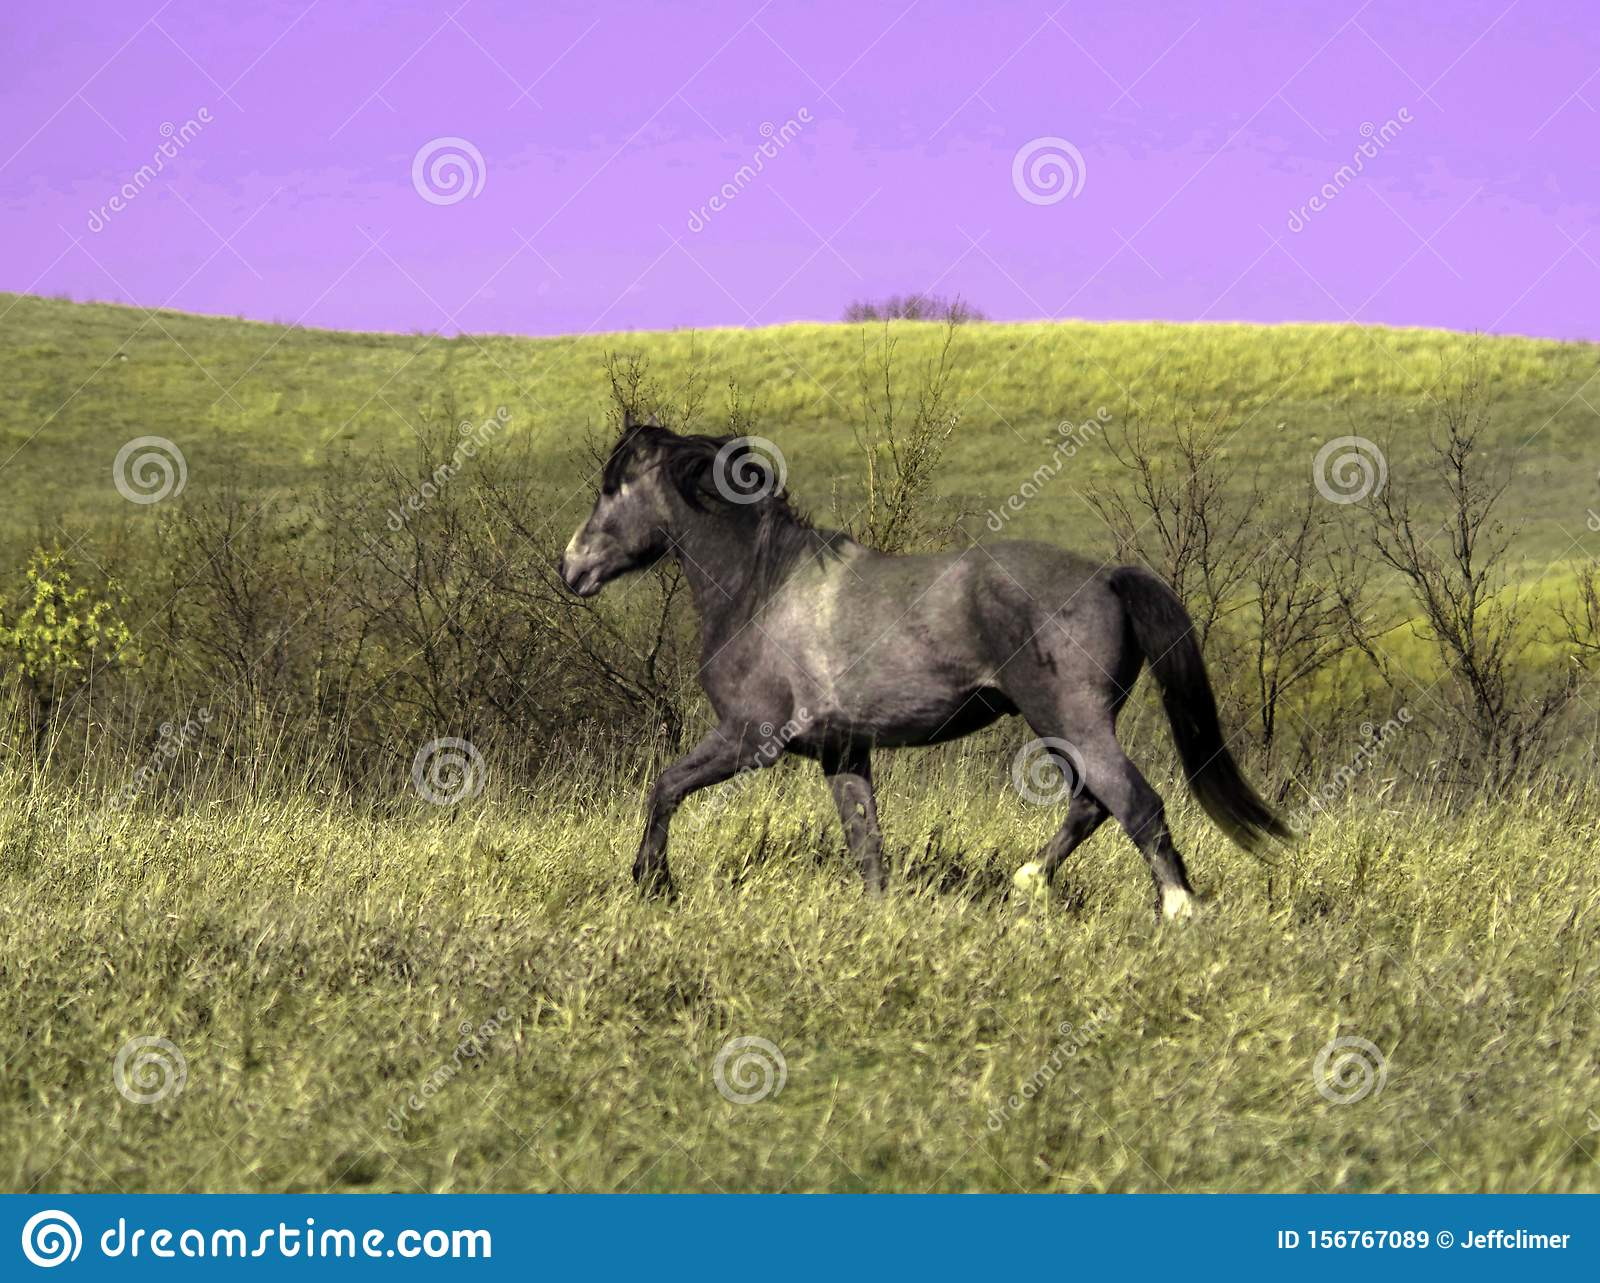 Feral stud horse running on the plains